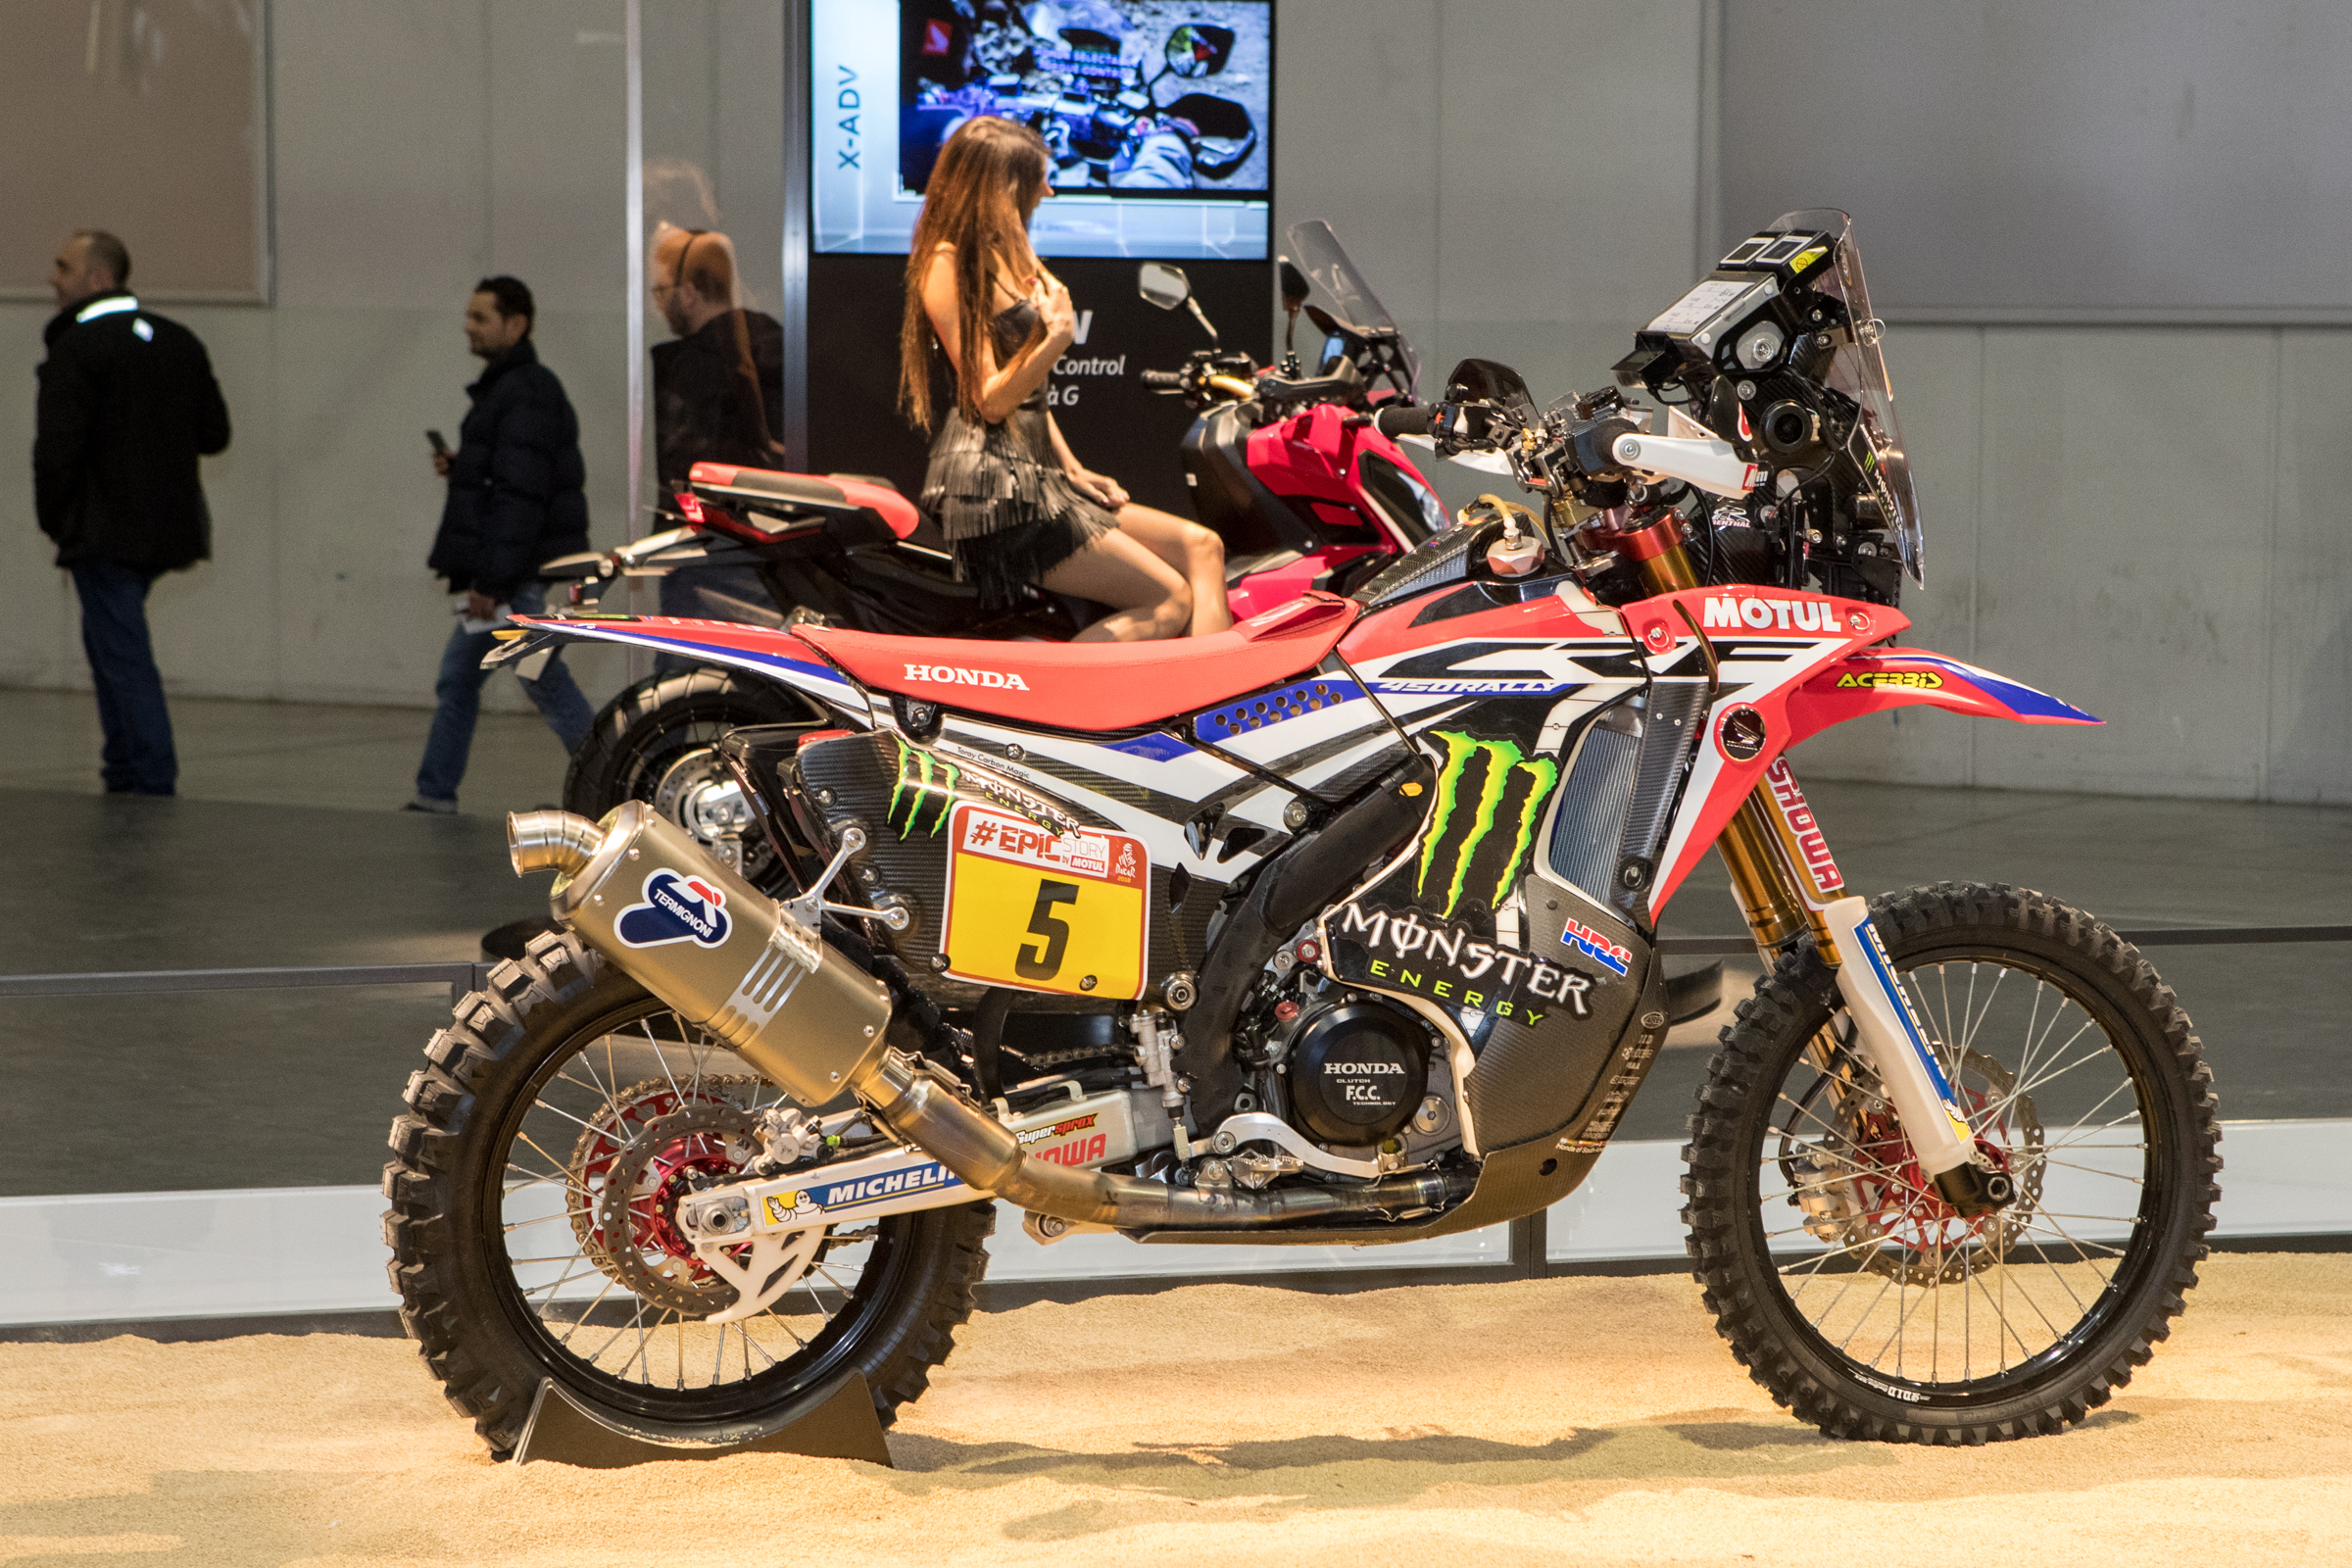 The latest CRF450R Rally shares very little with the motocross bike, maybe just a hand full of things such as forks, hubs, and a few bolts here and there. The engine is a one-off dual cam engine, it has its own frame and swingarm, bodywork, shock, electronics, and more.